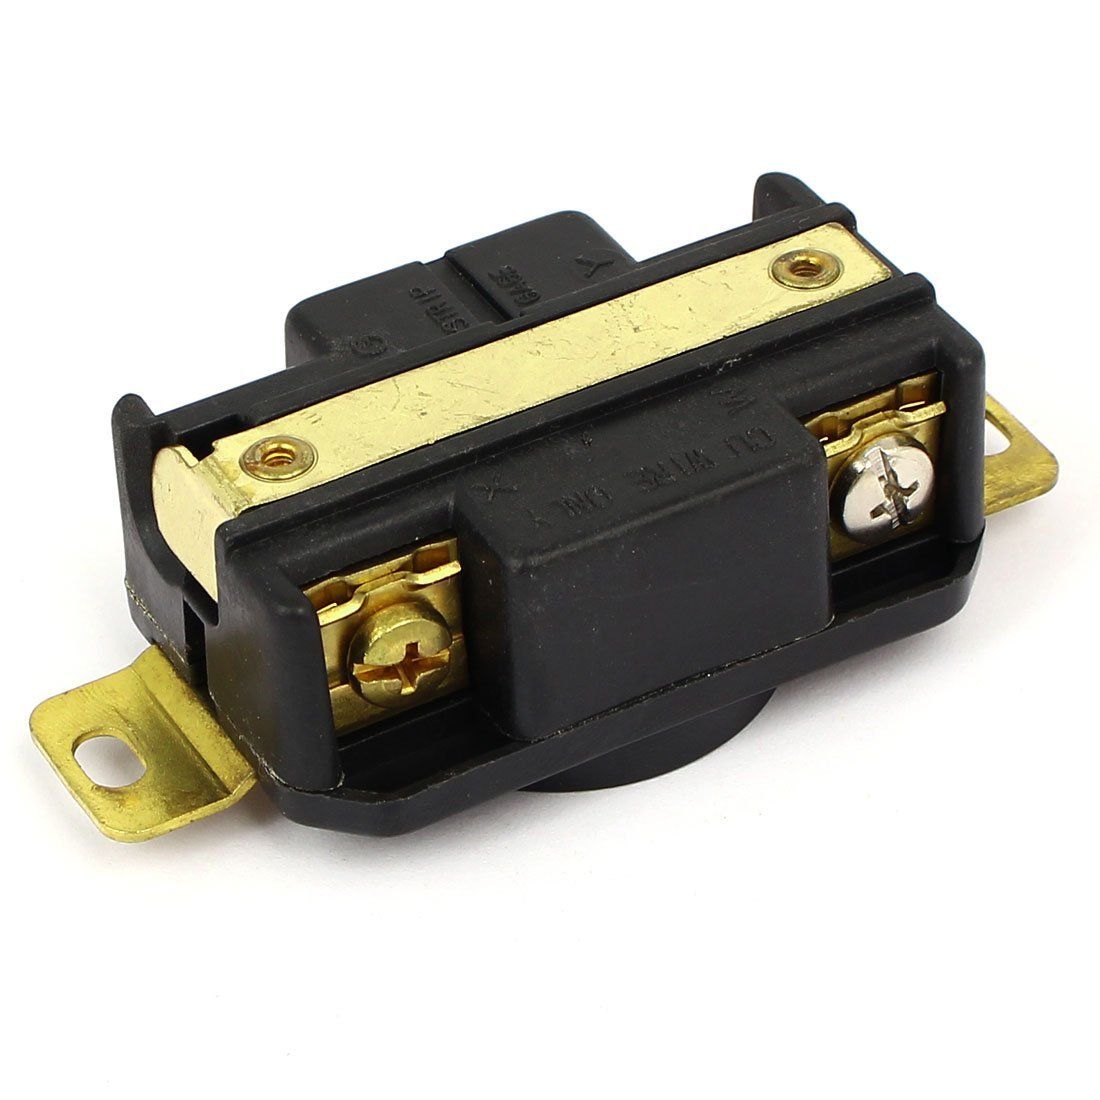 DealMux AC 125V/250V 20A US Socket Twist Lock Electrical Receptacle LK-2421F NEMA L14-20R